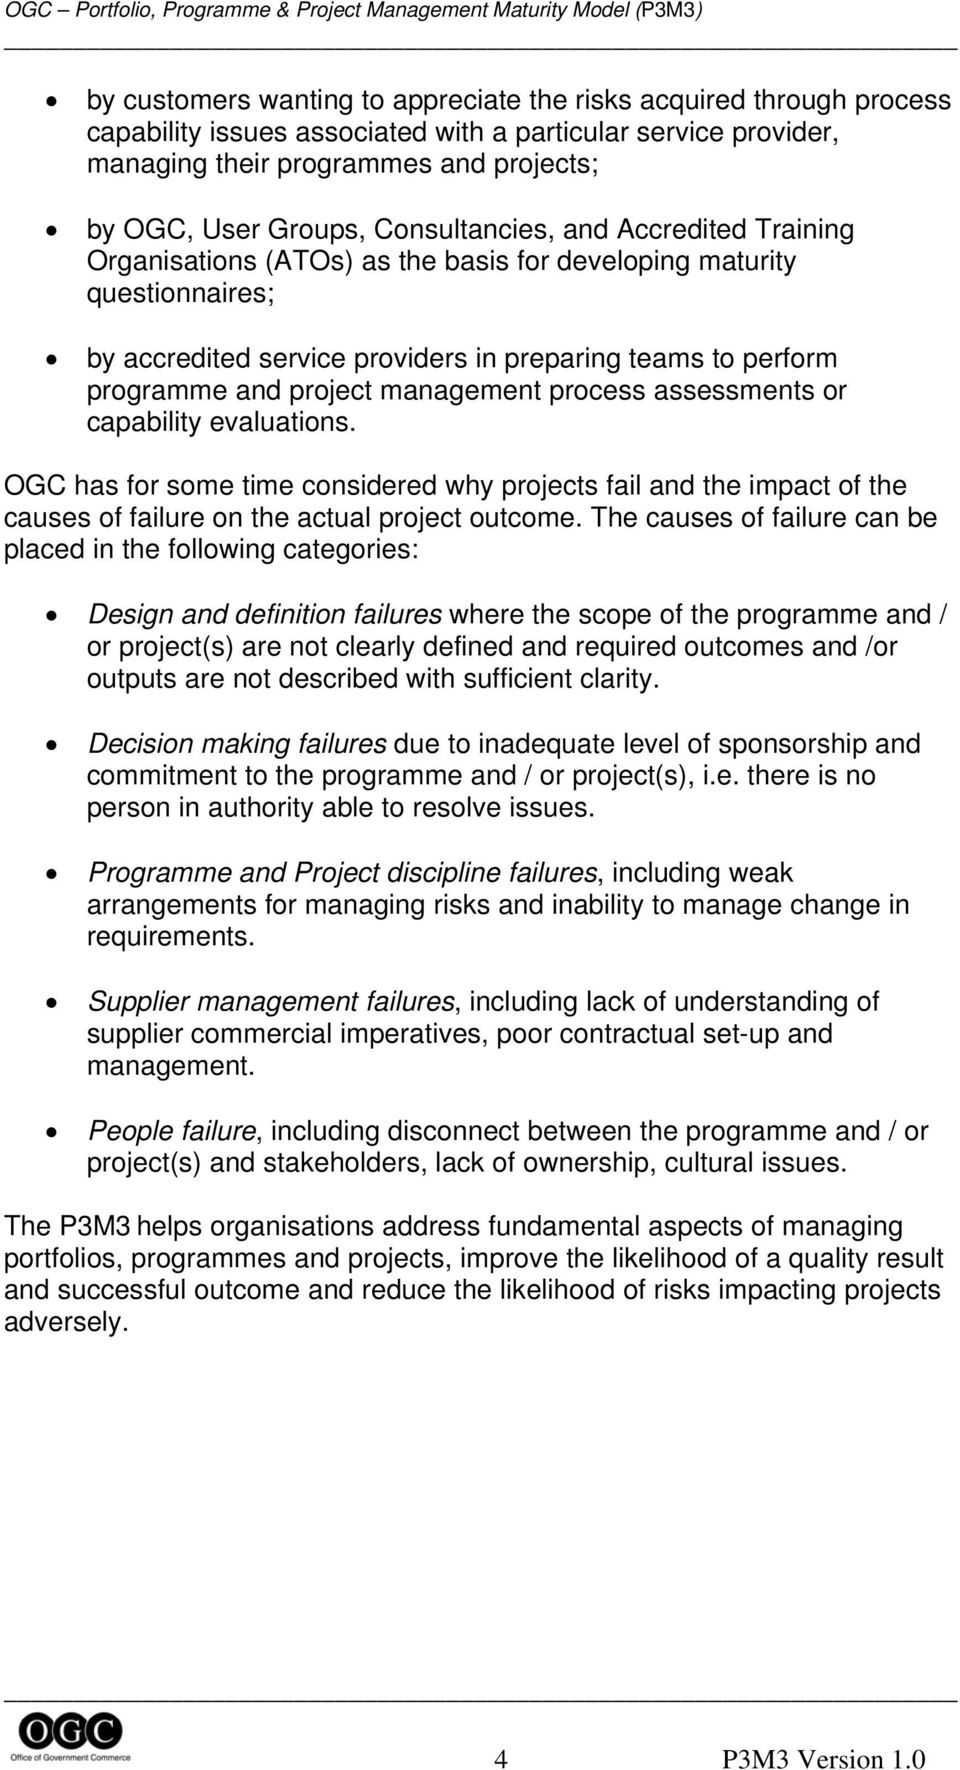 management process assessments or capability evaluations. OGC has for some time considered why projects fail and the impact of the causes of failure on the actual project outcome.